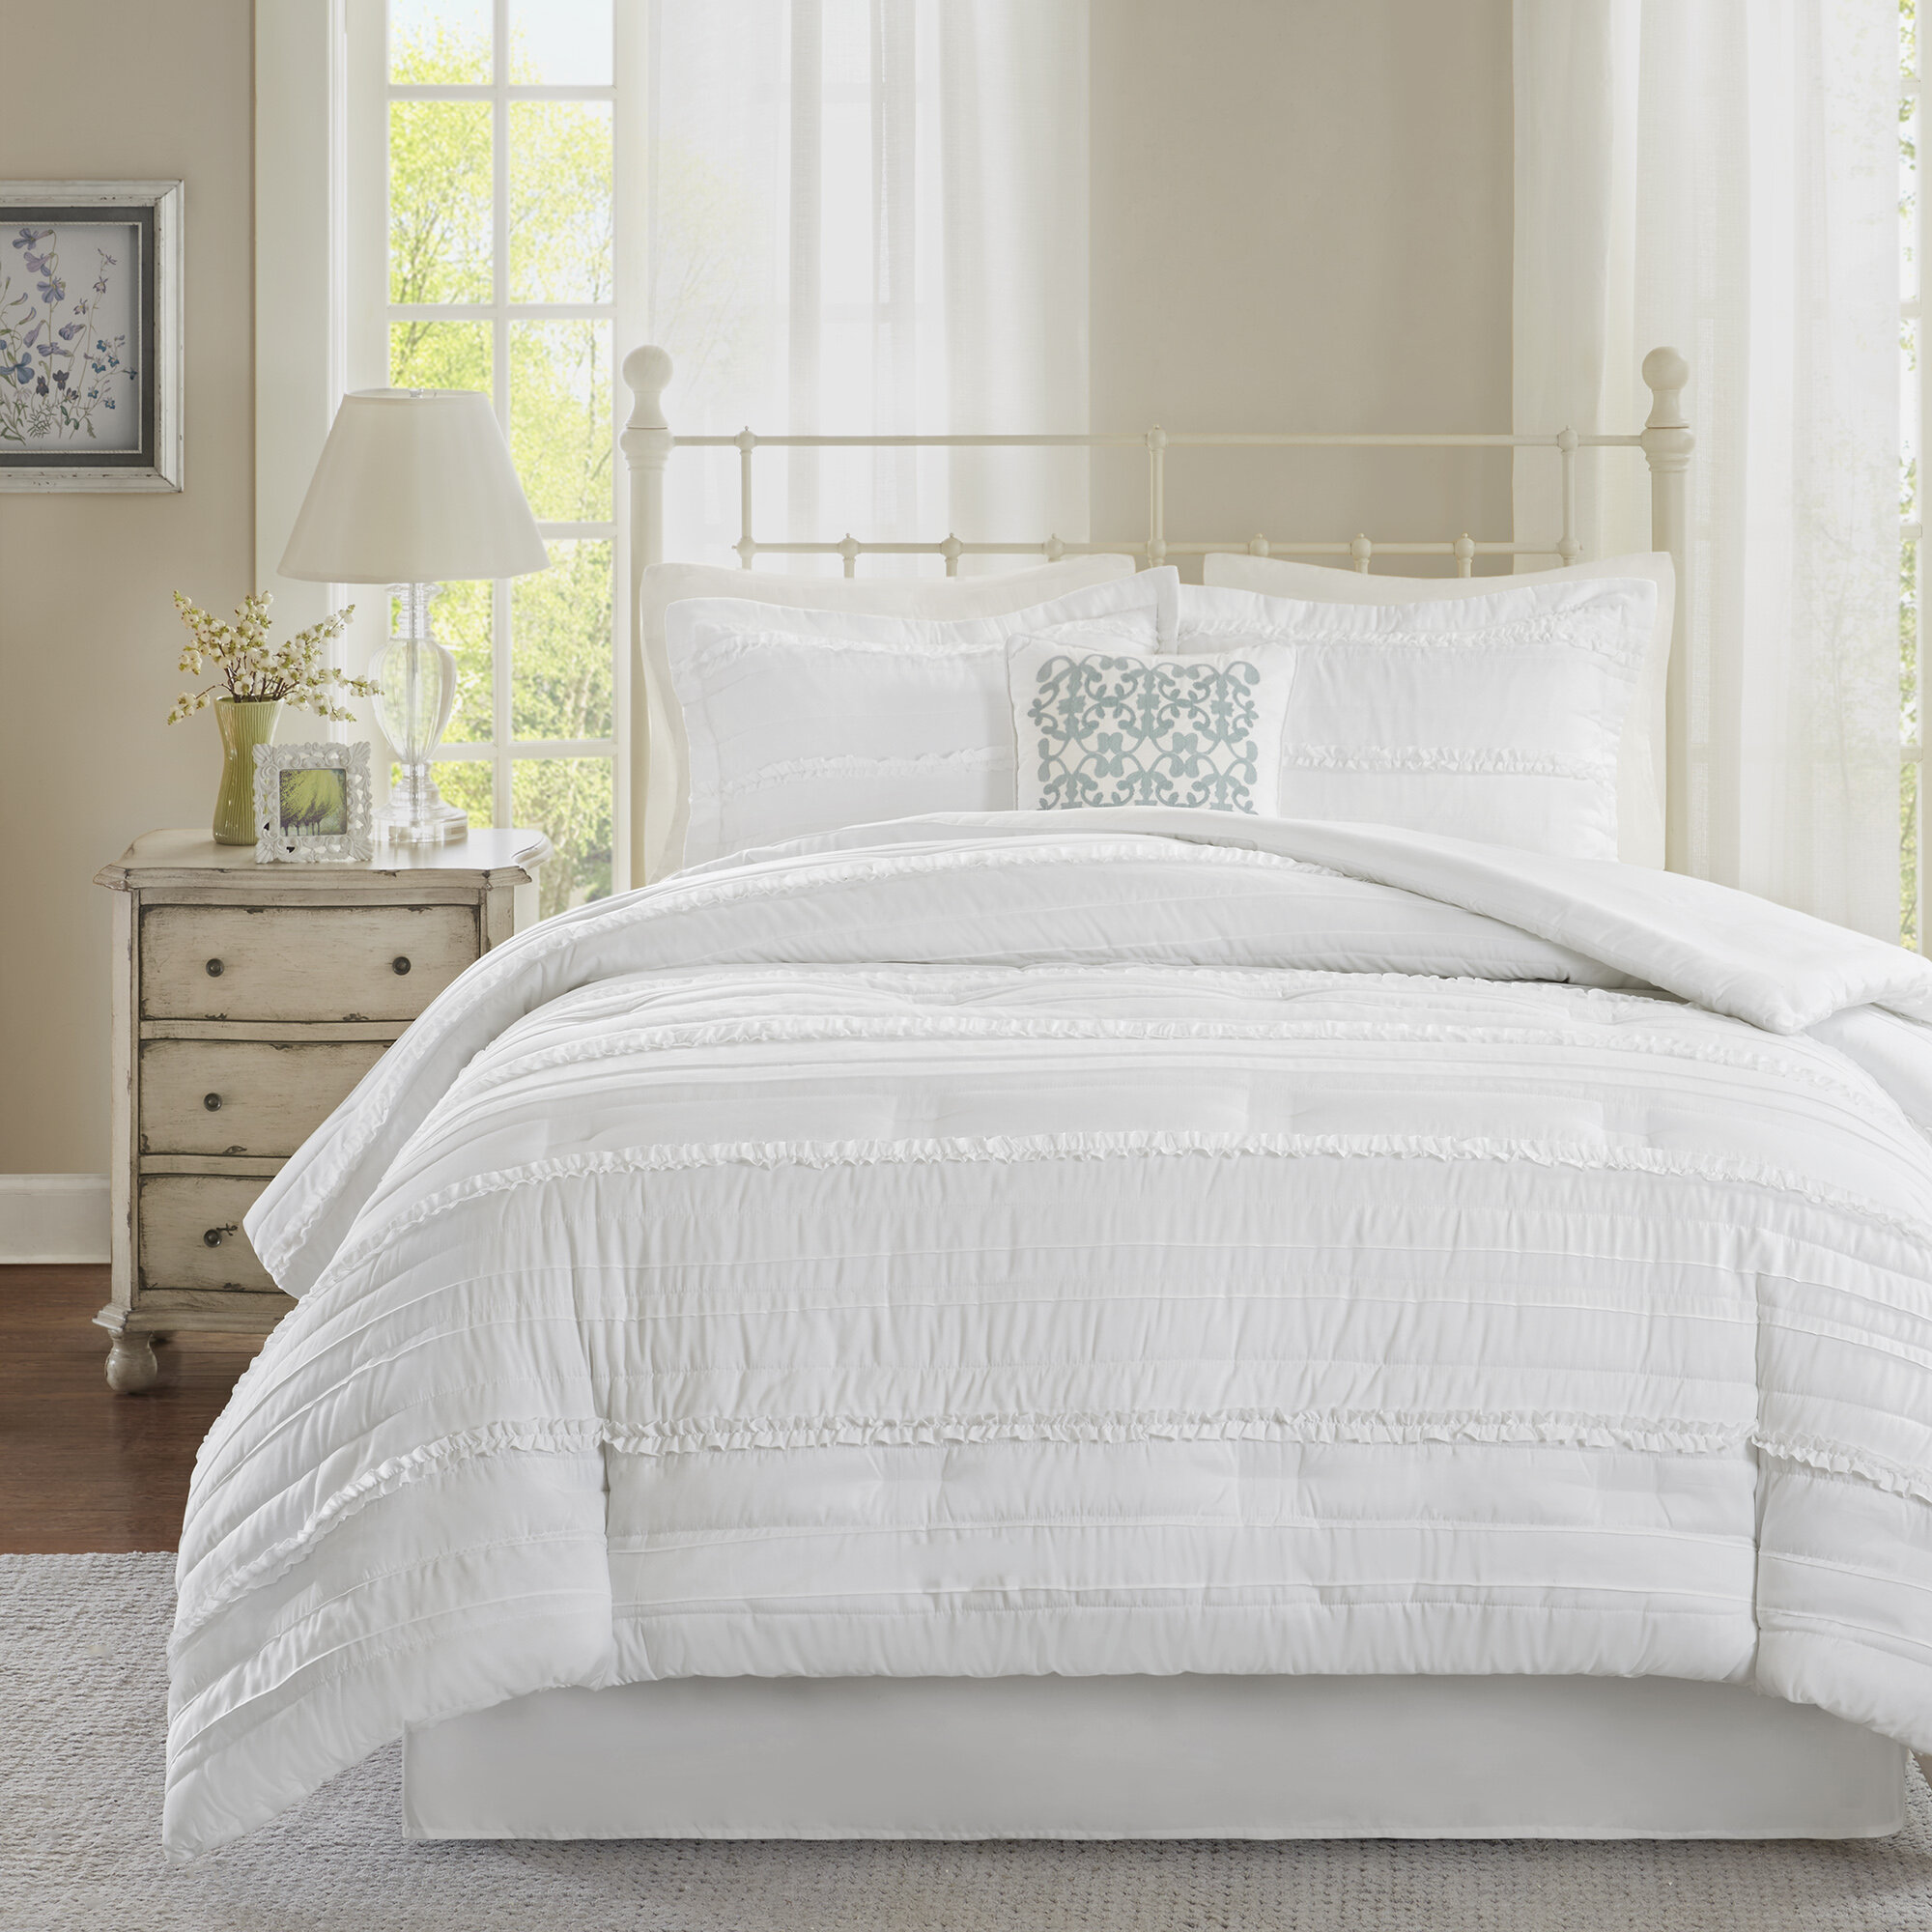 Lark Manor Bridget 5 Piece Comforter Set & Reviews | Wayfair